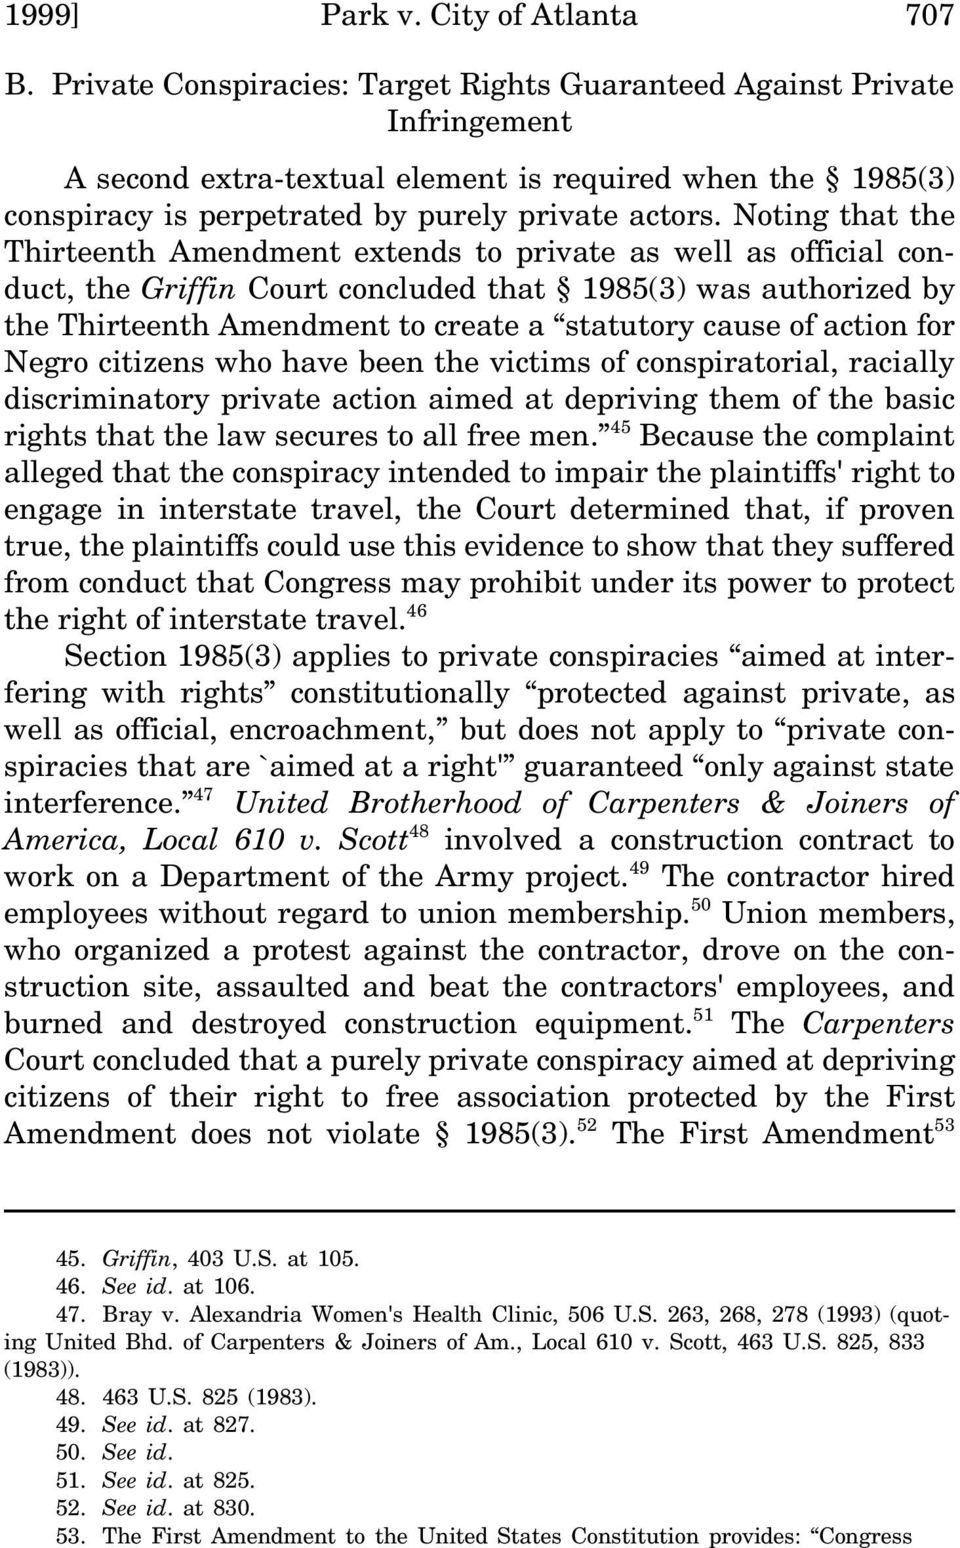 Noting that the Thirteenth Amendment extends to private as well as official conduct, the Griffin Court concluded that 1985(3) was authorized by the Thirteenth Amendment to create a statutory cause of